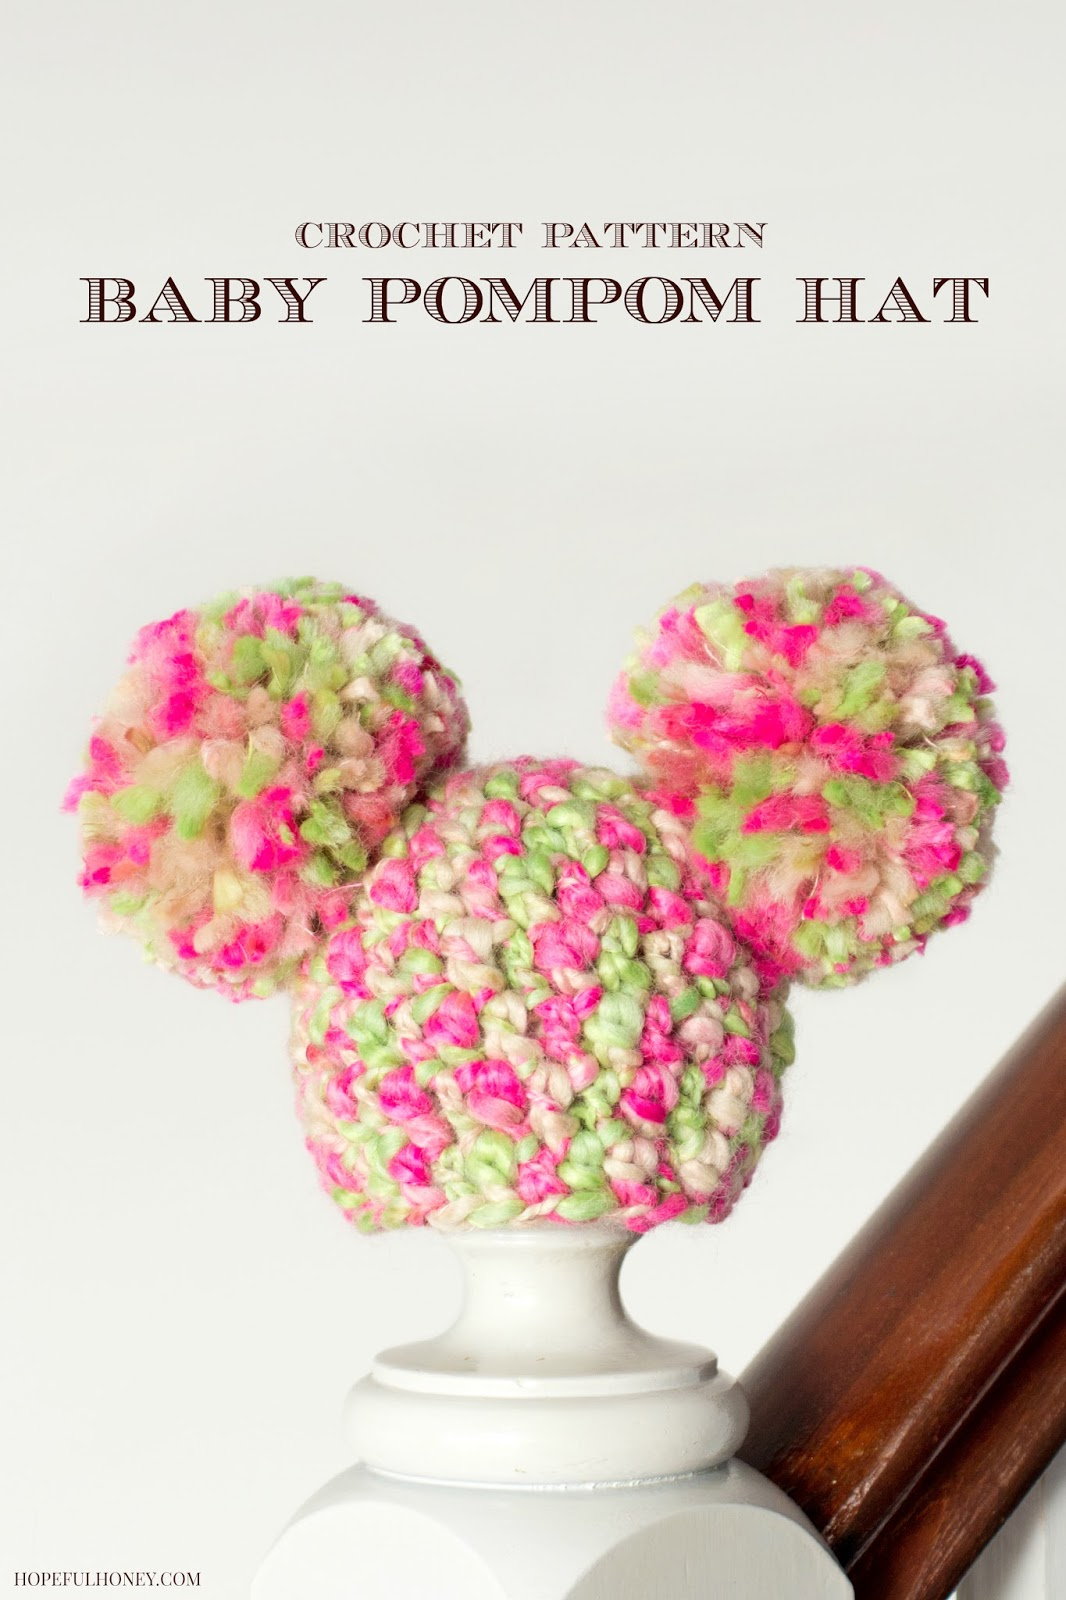 Crochet Newborn Pom Pom Hat Pattern : Hopeful Honey Craft, Crochet, Create: Newborn Fairy ...